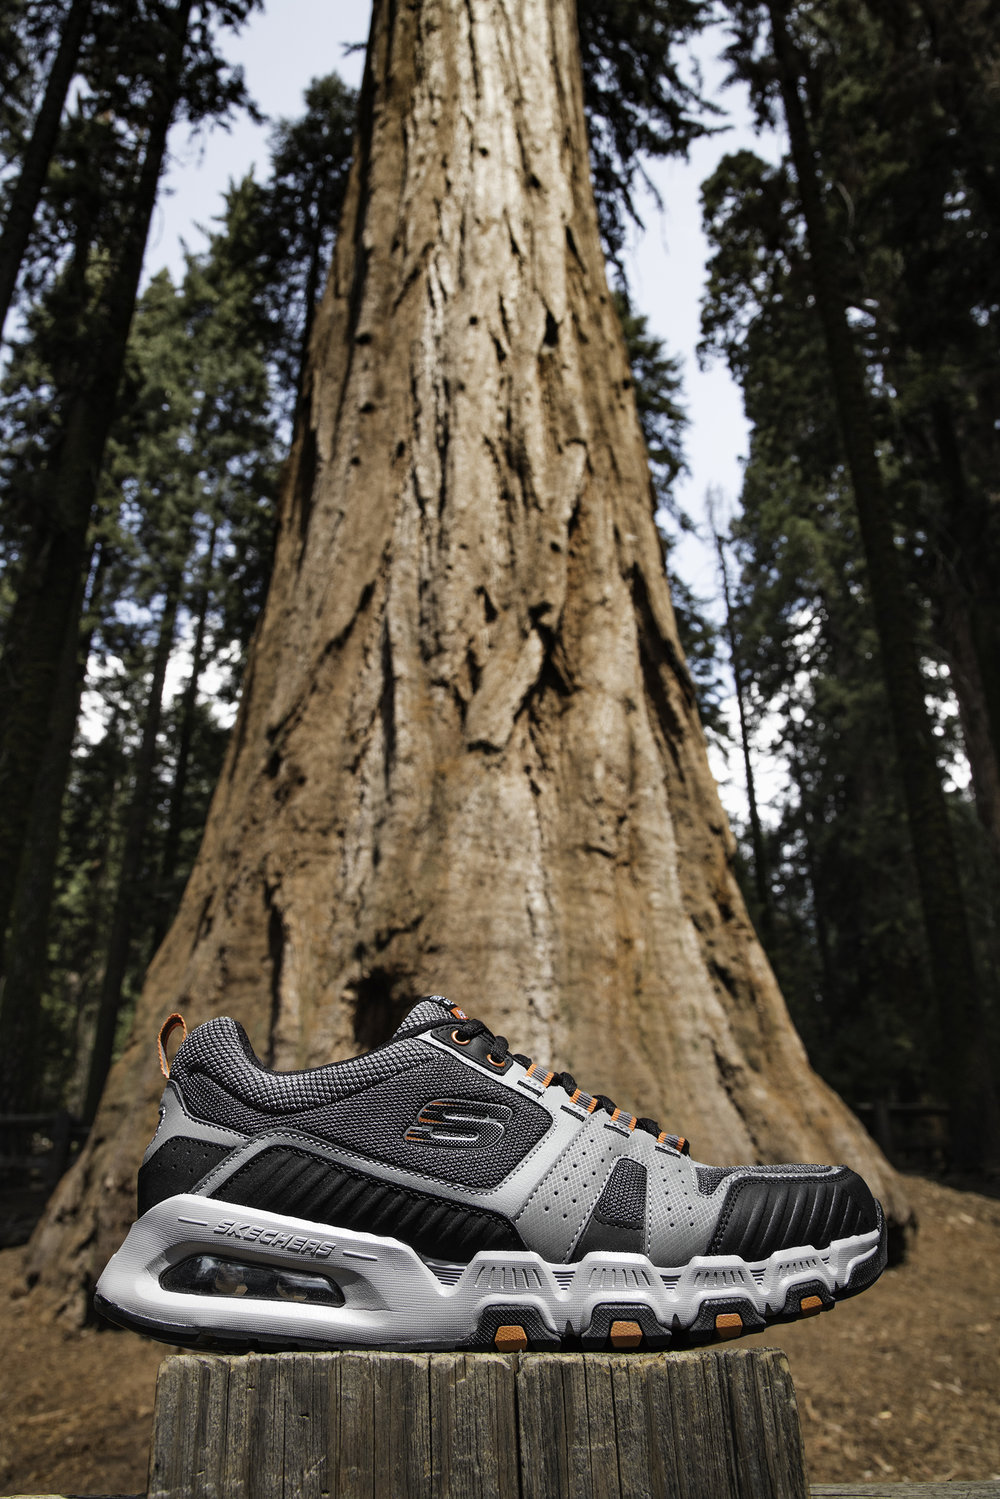 skechers, giant sequoia